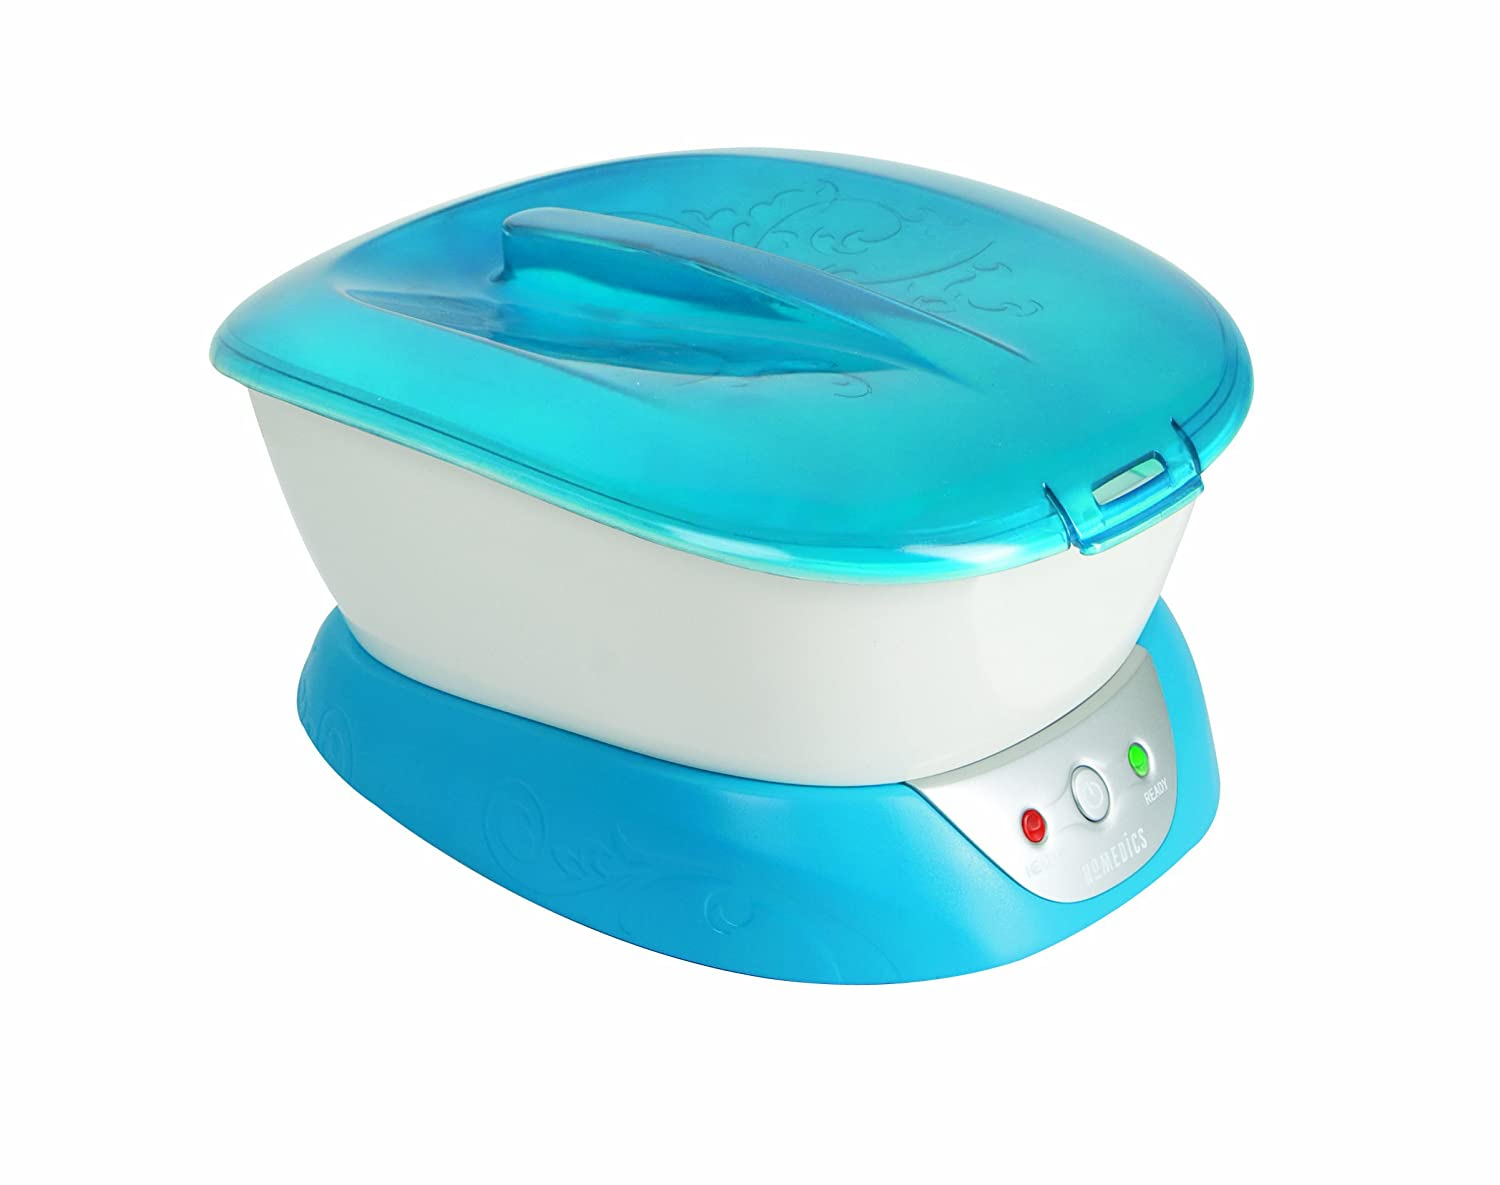 HoMedics Thera-P Paraspa Plus Paraffin Bath by Homedics PAR-350-THP